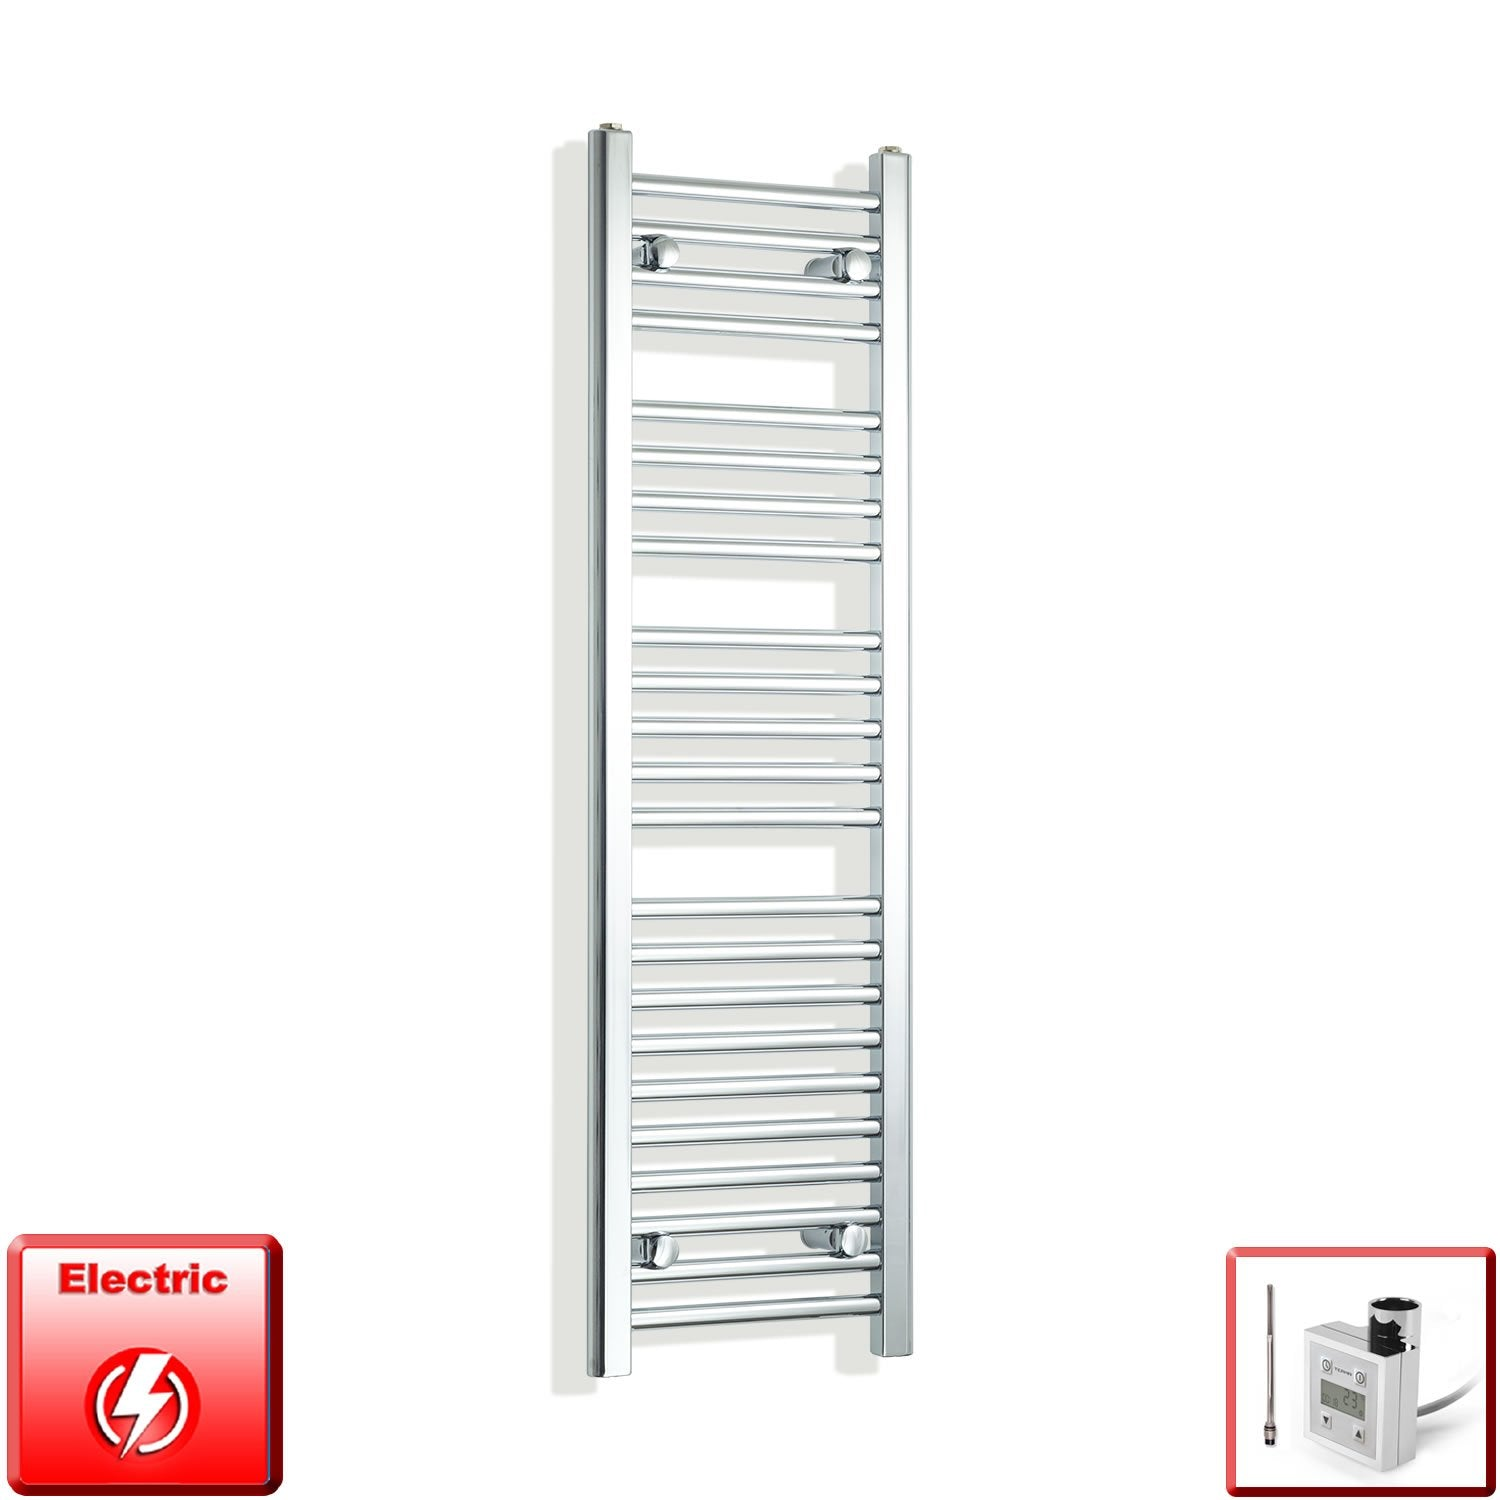 300mm Wide 1400mm High Flat Chrome Pre-Filled Electric Heated Towel Rail Radiator HTR,KTX-3 Thermostatic Element